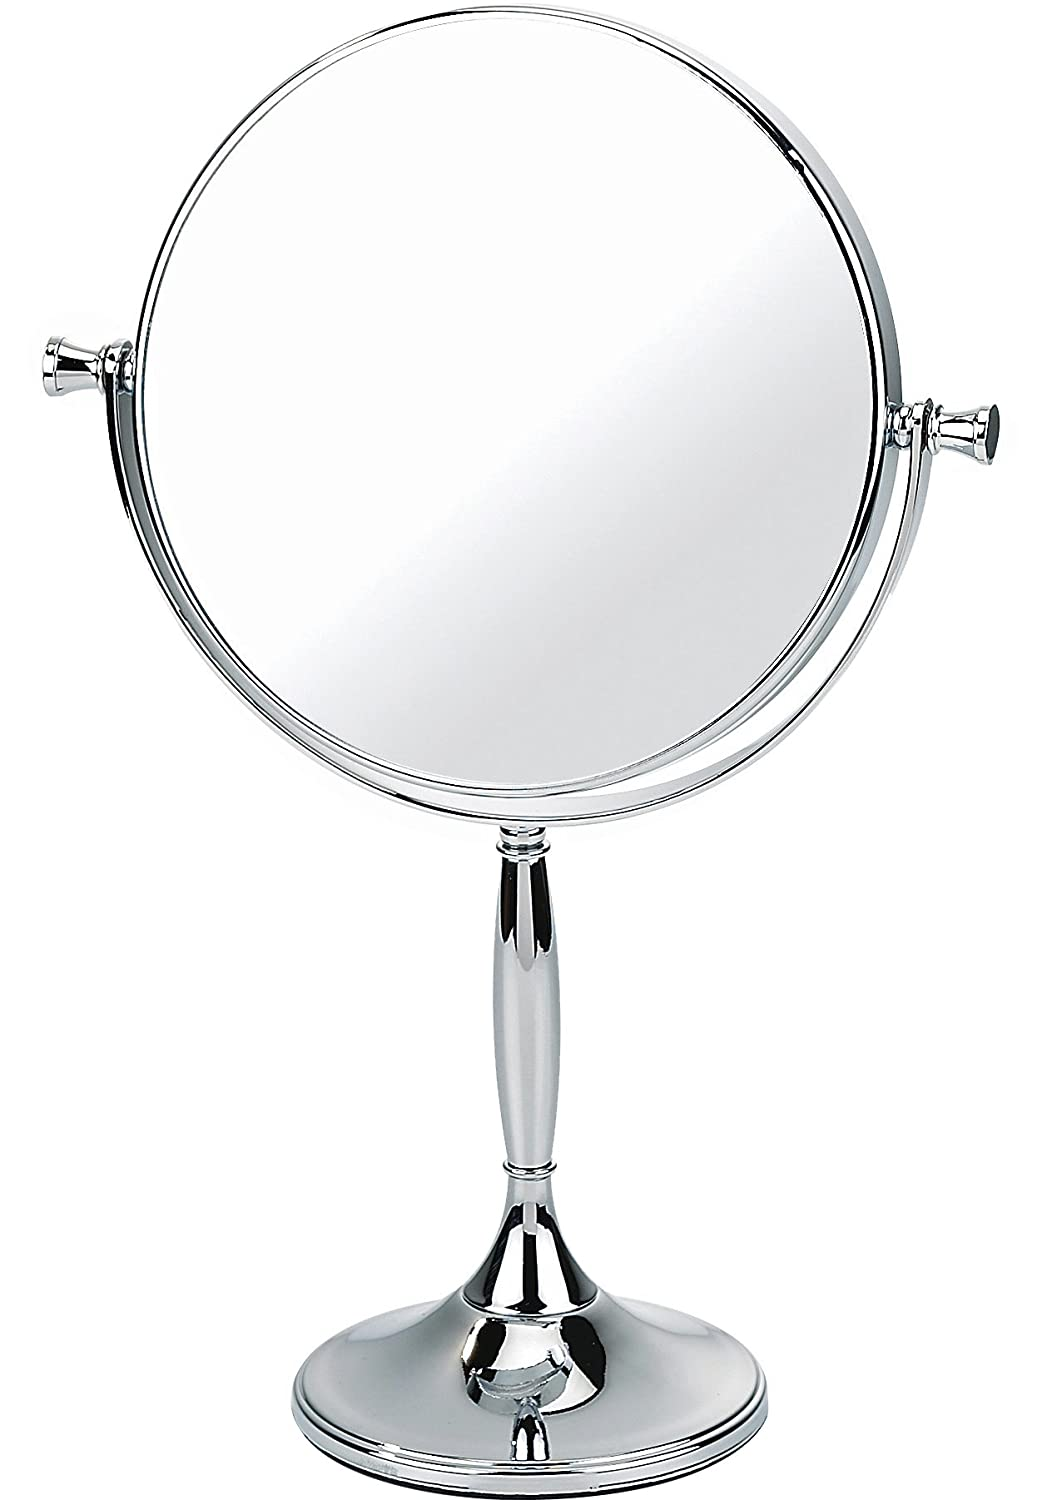 Chrome Pedestal Mirror True Image x7 Magnfied 32cmx17.5cm Danielle Exclusive Creations 0637